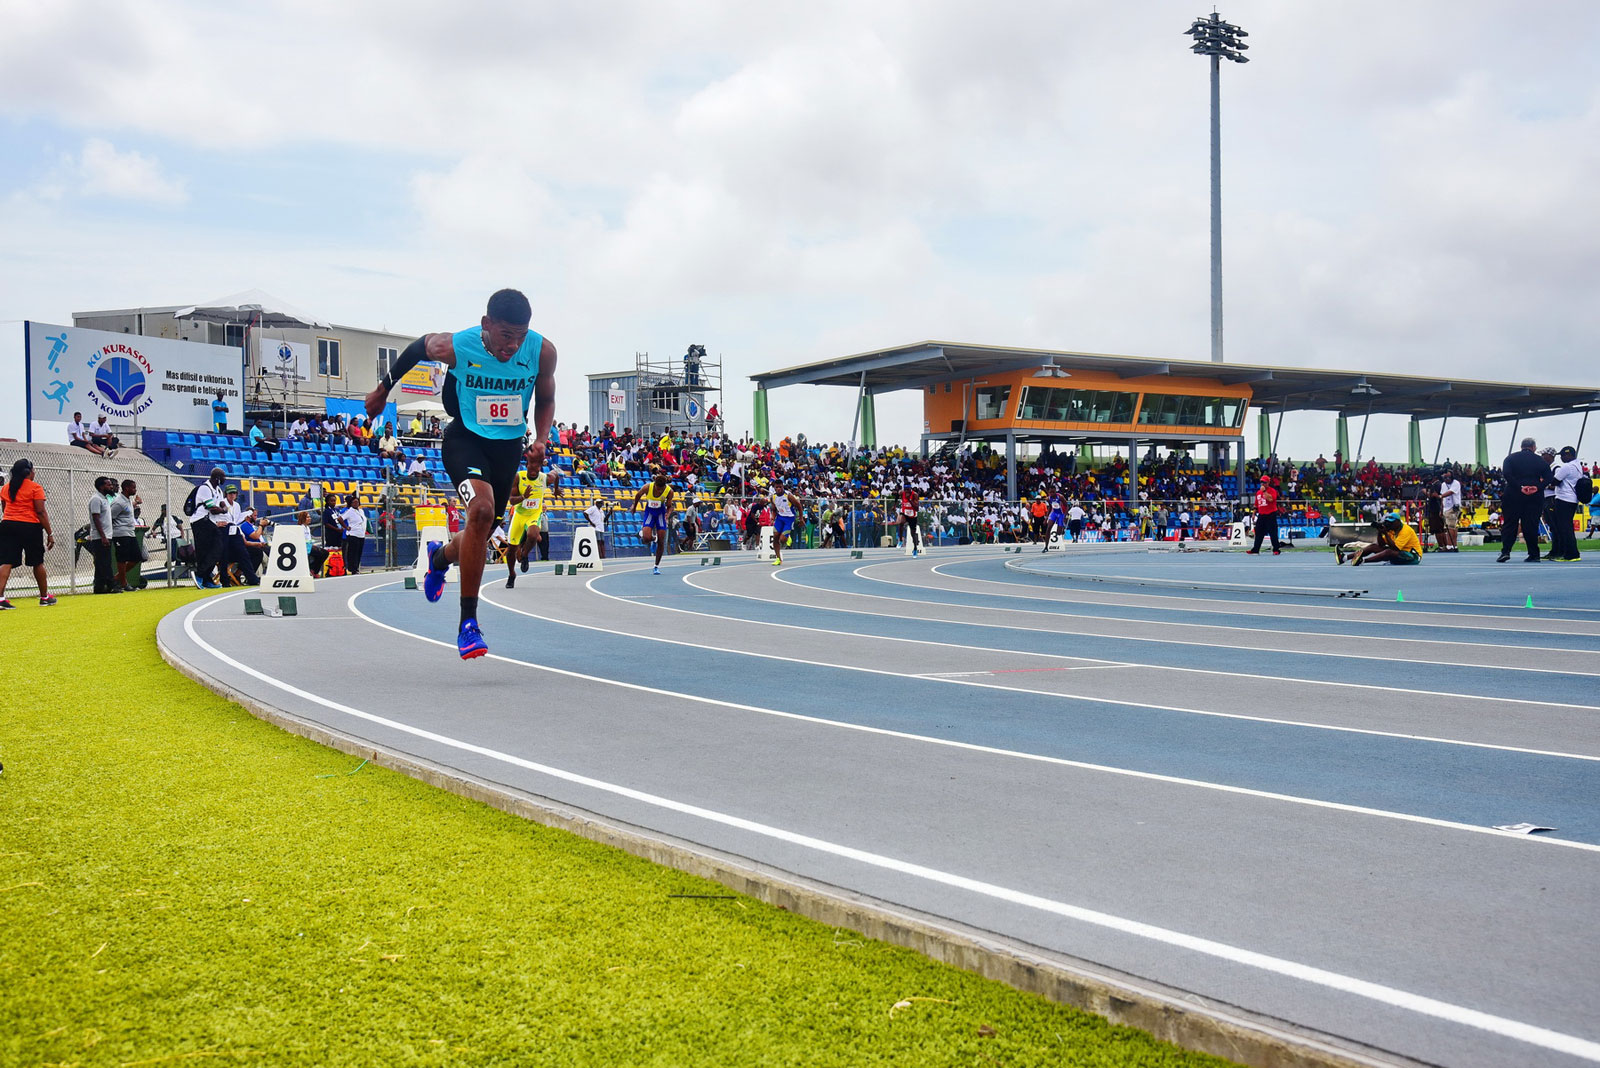 The start of the 800 meters race during the Carifta 2017 games held in Curacao.